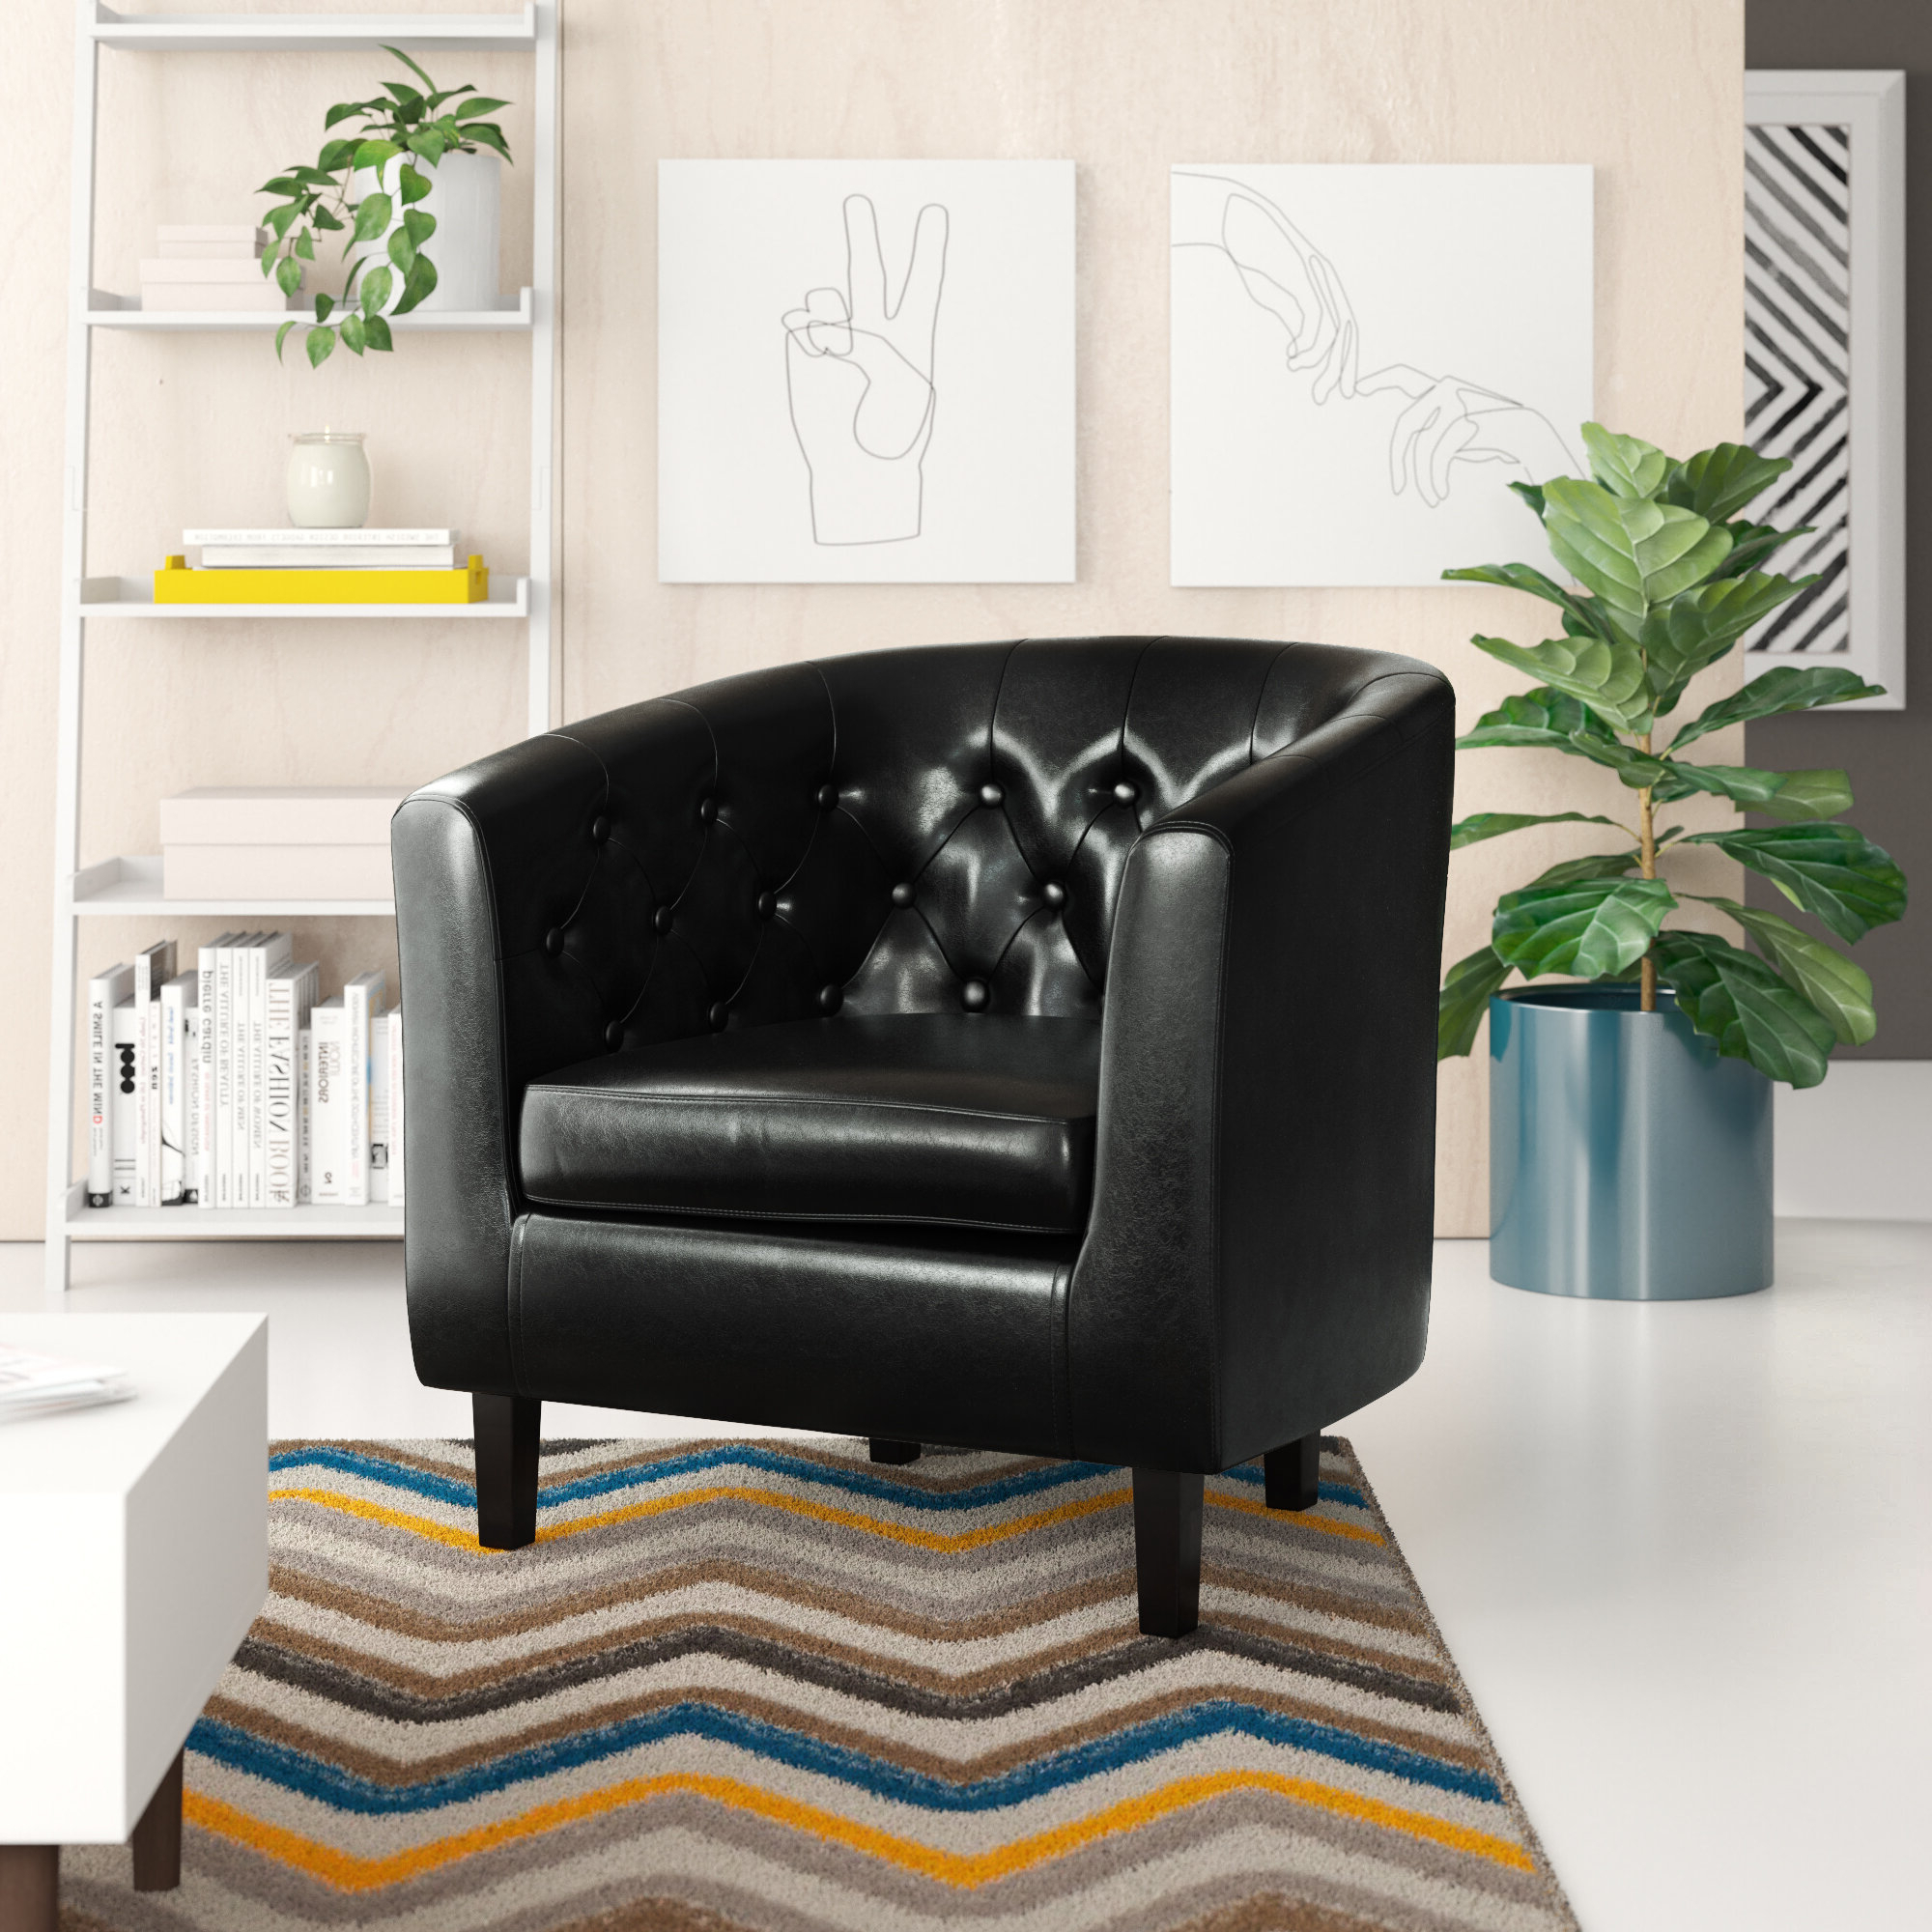 Fashionable Barrel Mid Century Modern Accent Chairs You'll Love In 2021 In Navin Barrel Chairs (View 8 of 20)